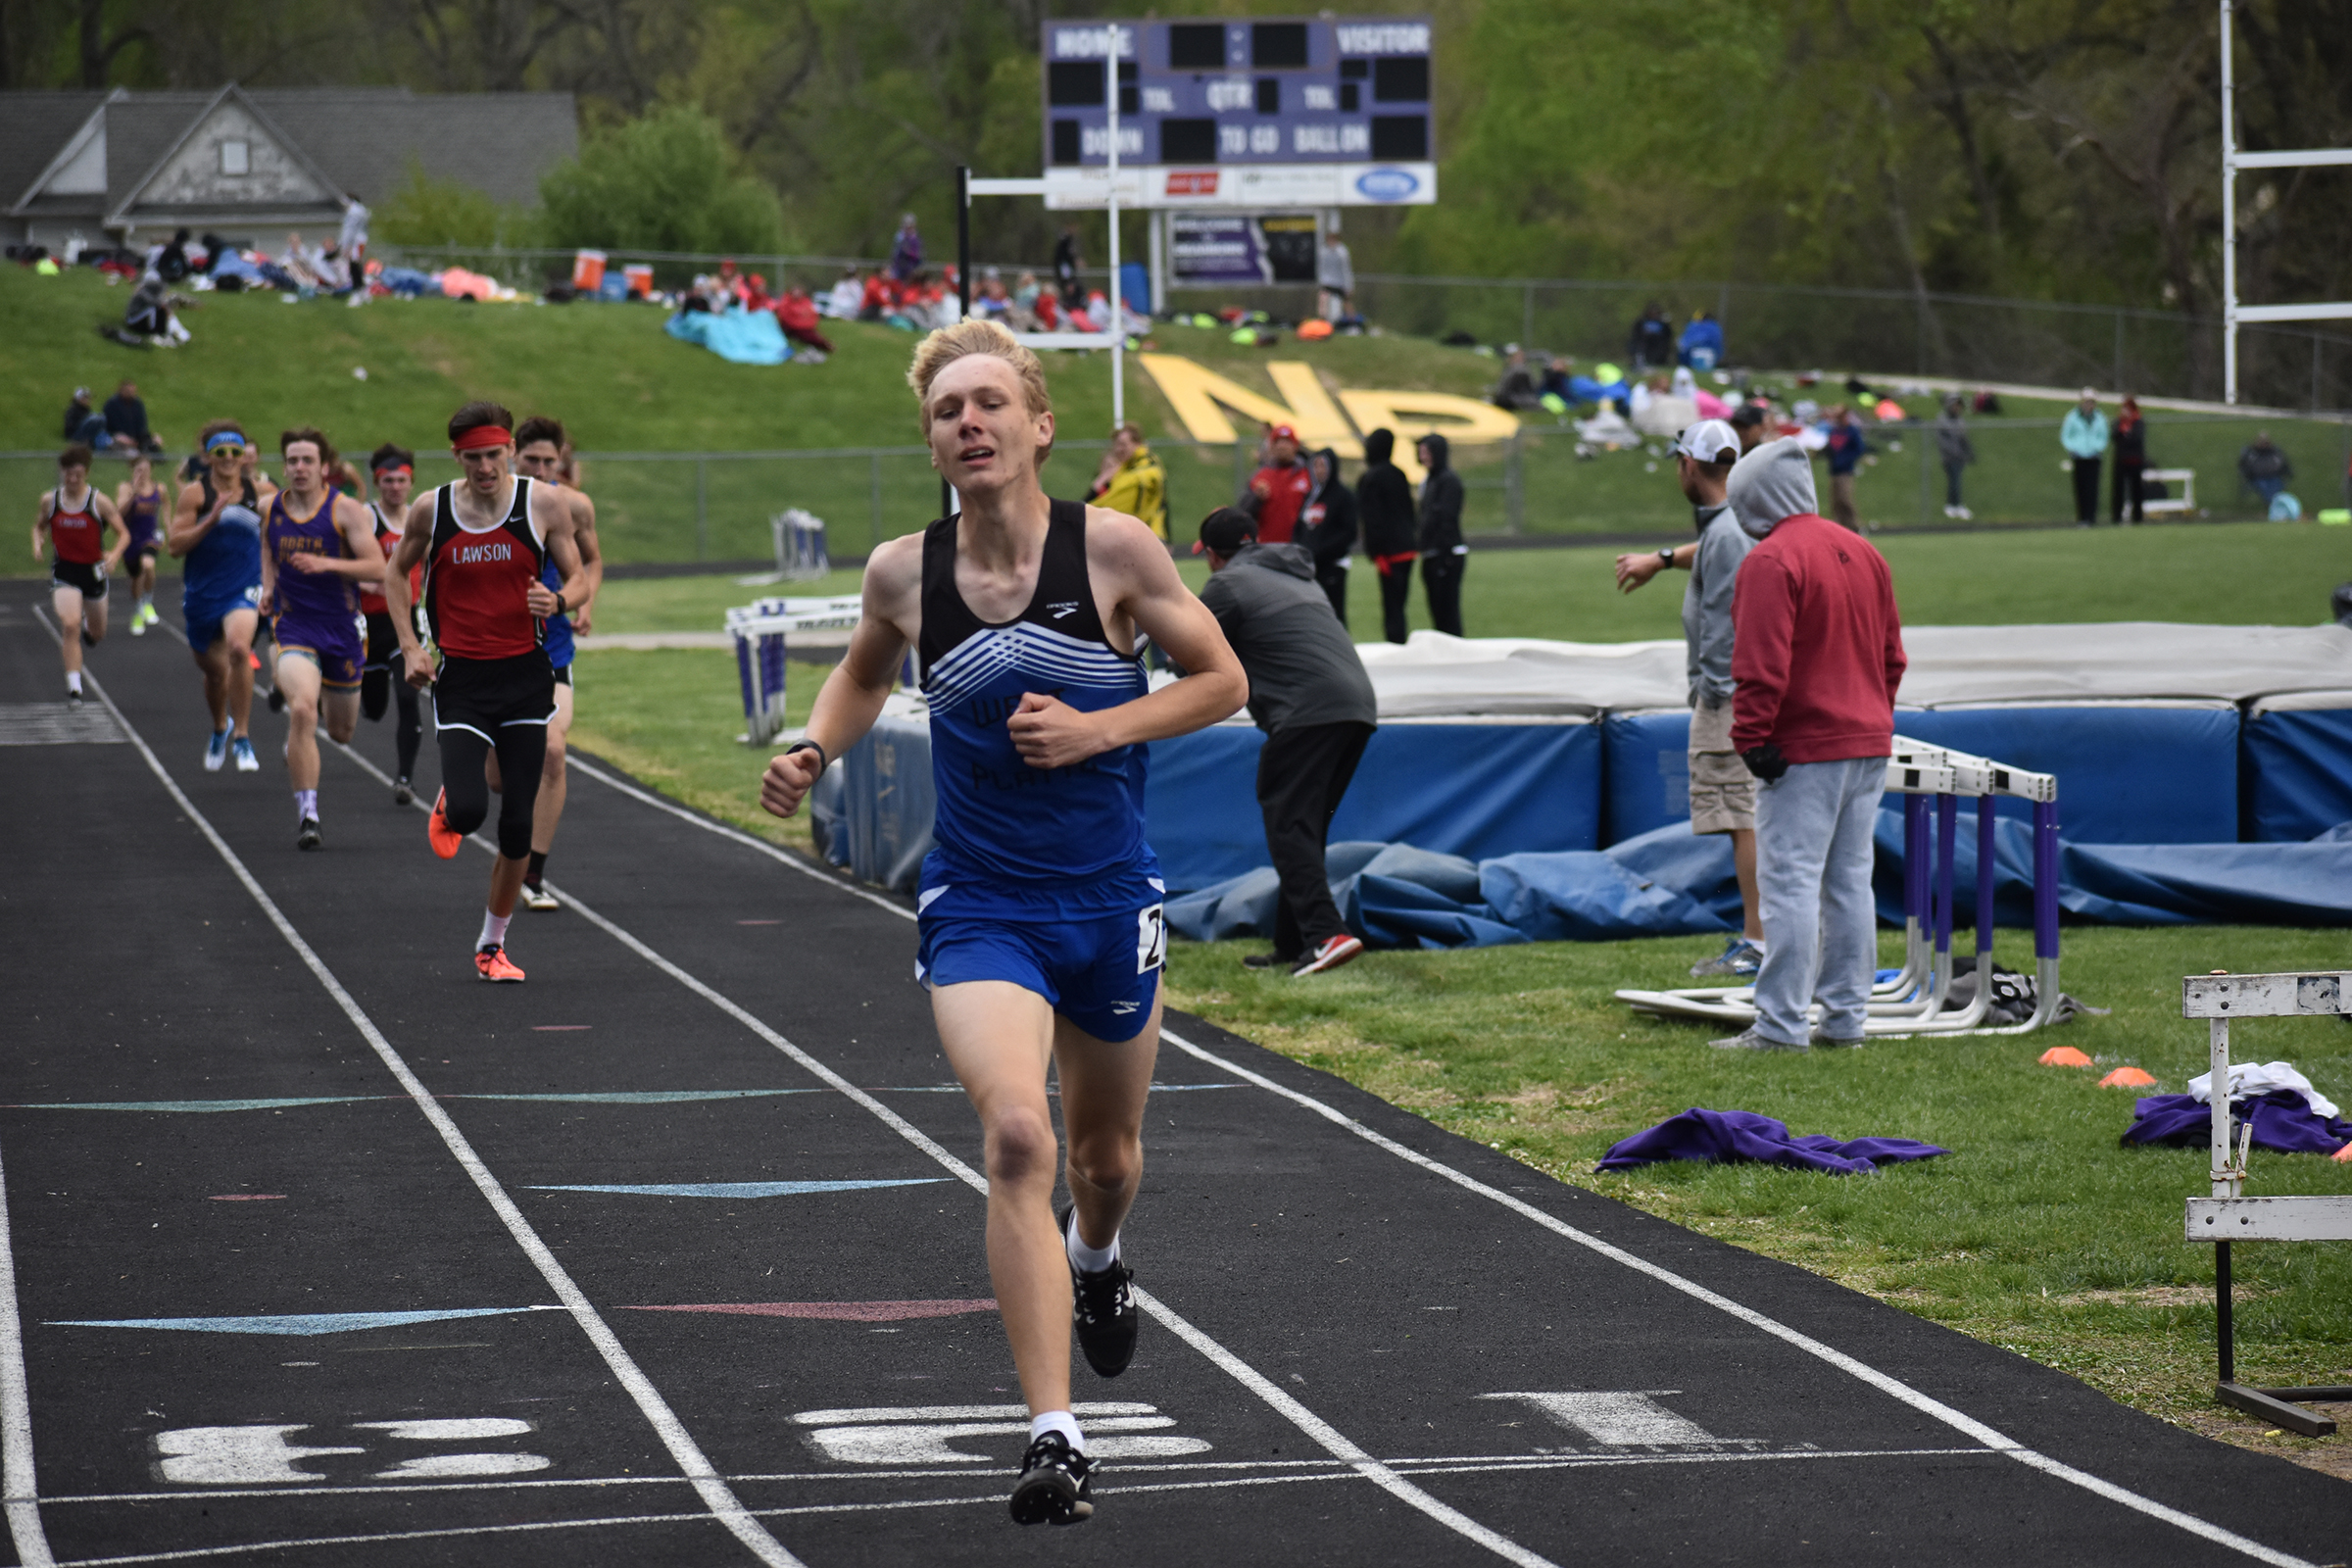 CHRIS KENDALL/Special to the Citizen West Platte's Max Davies won three events at the KCI Conference track and field meet held on Saturday, April 27 in Dearborn.